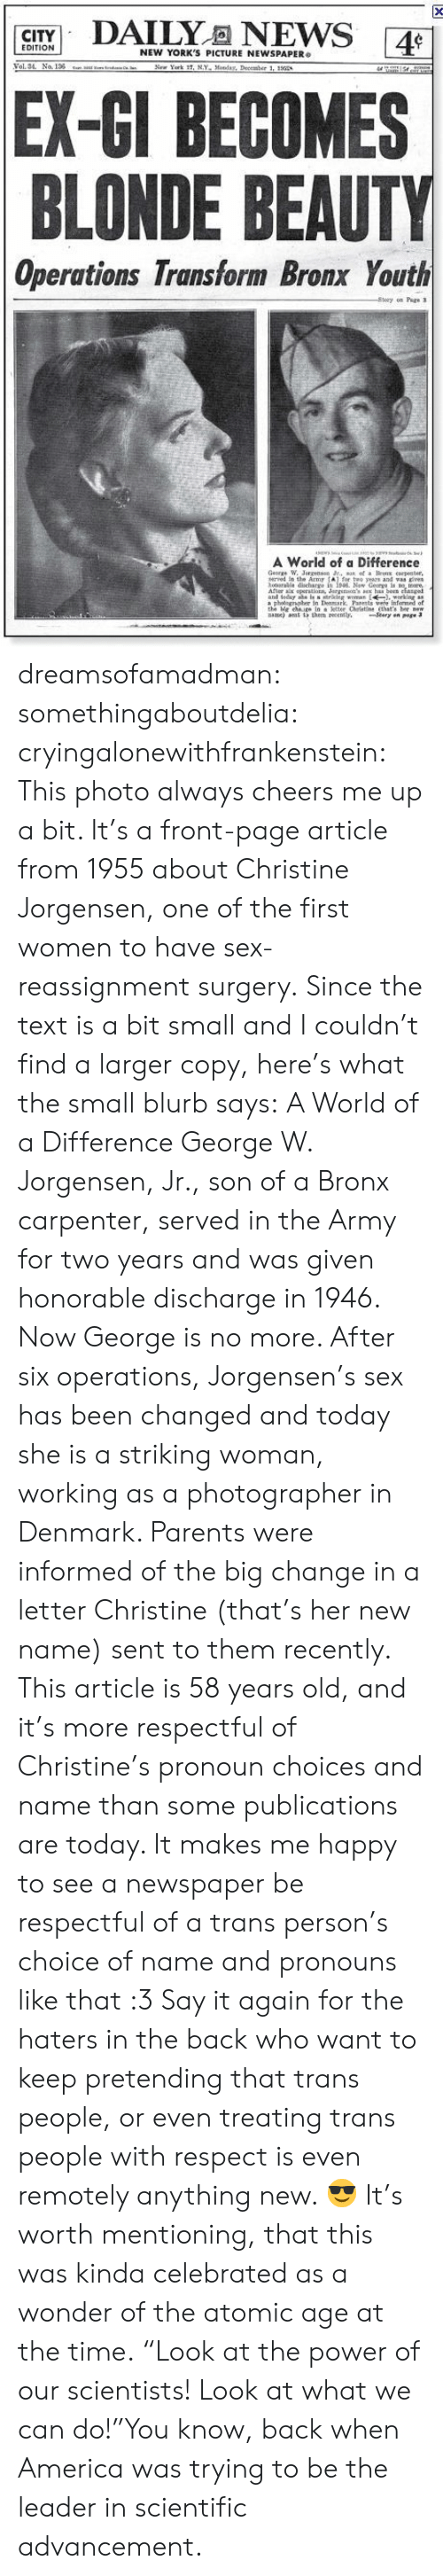 """America, Parents, and Respect: CITY  NEW YORK'S PICTURE NEWSPAPER  EX-GI BECOMES  BLONDE BEAUTY  Operations Transform Bronx Youth  A World of a Difference  Geare W  wrved in the ArmY A] fr twe yeags and as dves  loralle discharge in İNL New Gerga ls mere.  atal leday ate s  a photegnaher in Denrk Parents were  in a eter Christine (thats dreamsofamadman: somethingaboutdelia:  cryingalonewithfrankenstein:  This photo always cheers me up a bit. It's a front-page article from 1955 about Christine Jorgensen, one of the first women to have sex-reassignment surgery. Since the text is a bit small and I couldn't find a larger copy, here's what the small blurb says: A World of a Difference  George W. Jorgensen, Jr., son of a Bronx carpenter, served in the Army for two years and was given honorable discharge in 1946. Now George is no more. After six operations, Jorgensen's sex has been changed and today she is a striking woman, working as a photographer in Denmark. Parents were informed of the big change in a letter Christine (that's her new name) sent to them recently.  This article is 58 years old, and it's more respectful of Christine's pronoun choices and name than some publications are today. It makes me happy to see a newspaper be respectful of a trans person's choice of name and pronouns like that :3  Say it again for the haters in the back who want to keep pretending that trans people, or even treating trans people with respect is even remotely anything new. 😎  It's worth mentioning, that this was kinda celebrated as a wonder of the atomic age at the time.""""Look at the power of our scientists! Look at what we can do!""""You know, back when America was trying to be the leader in scientific advancement."""